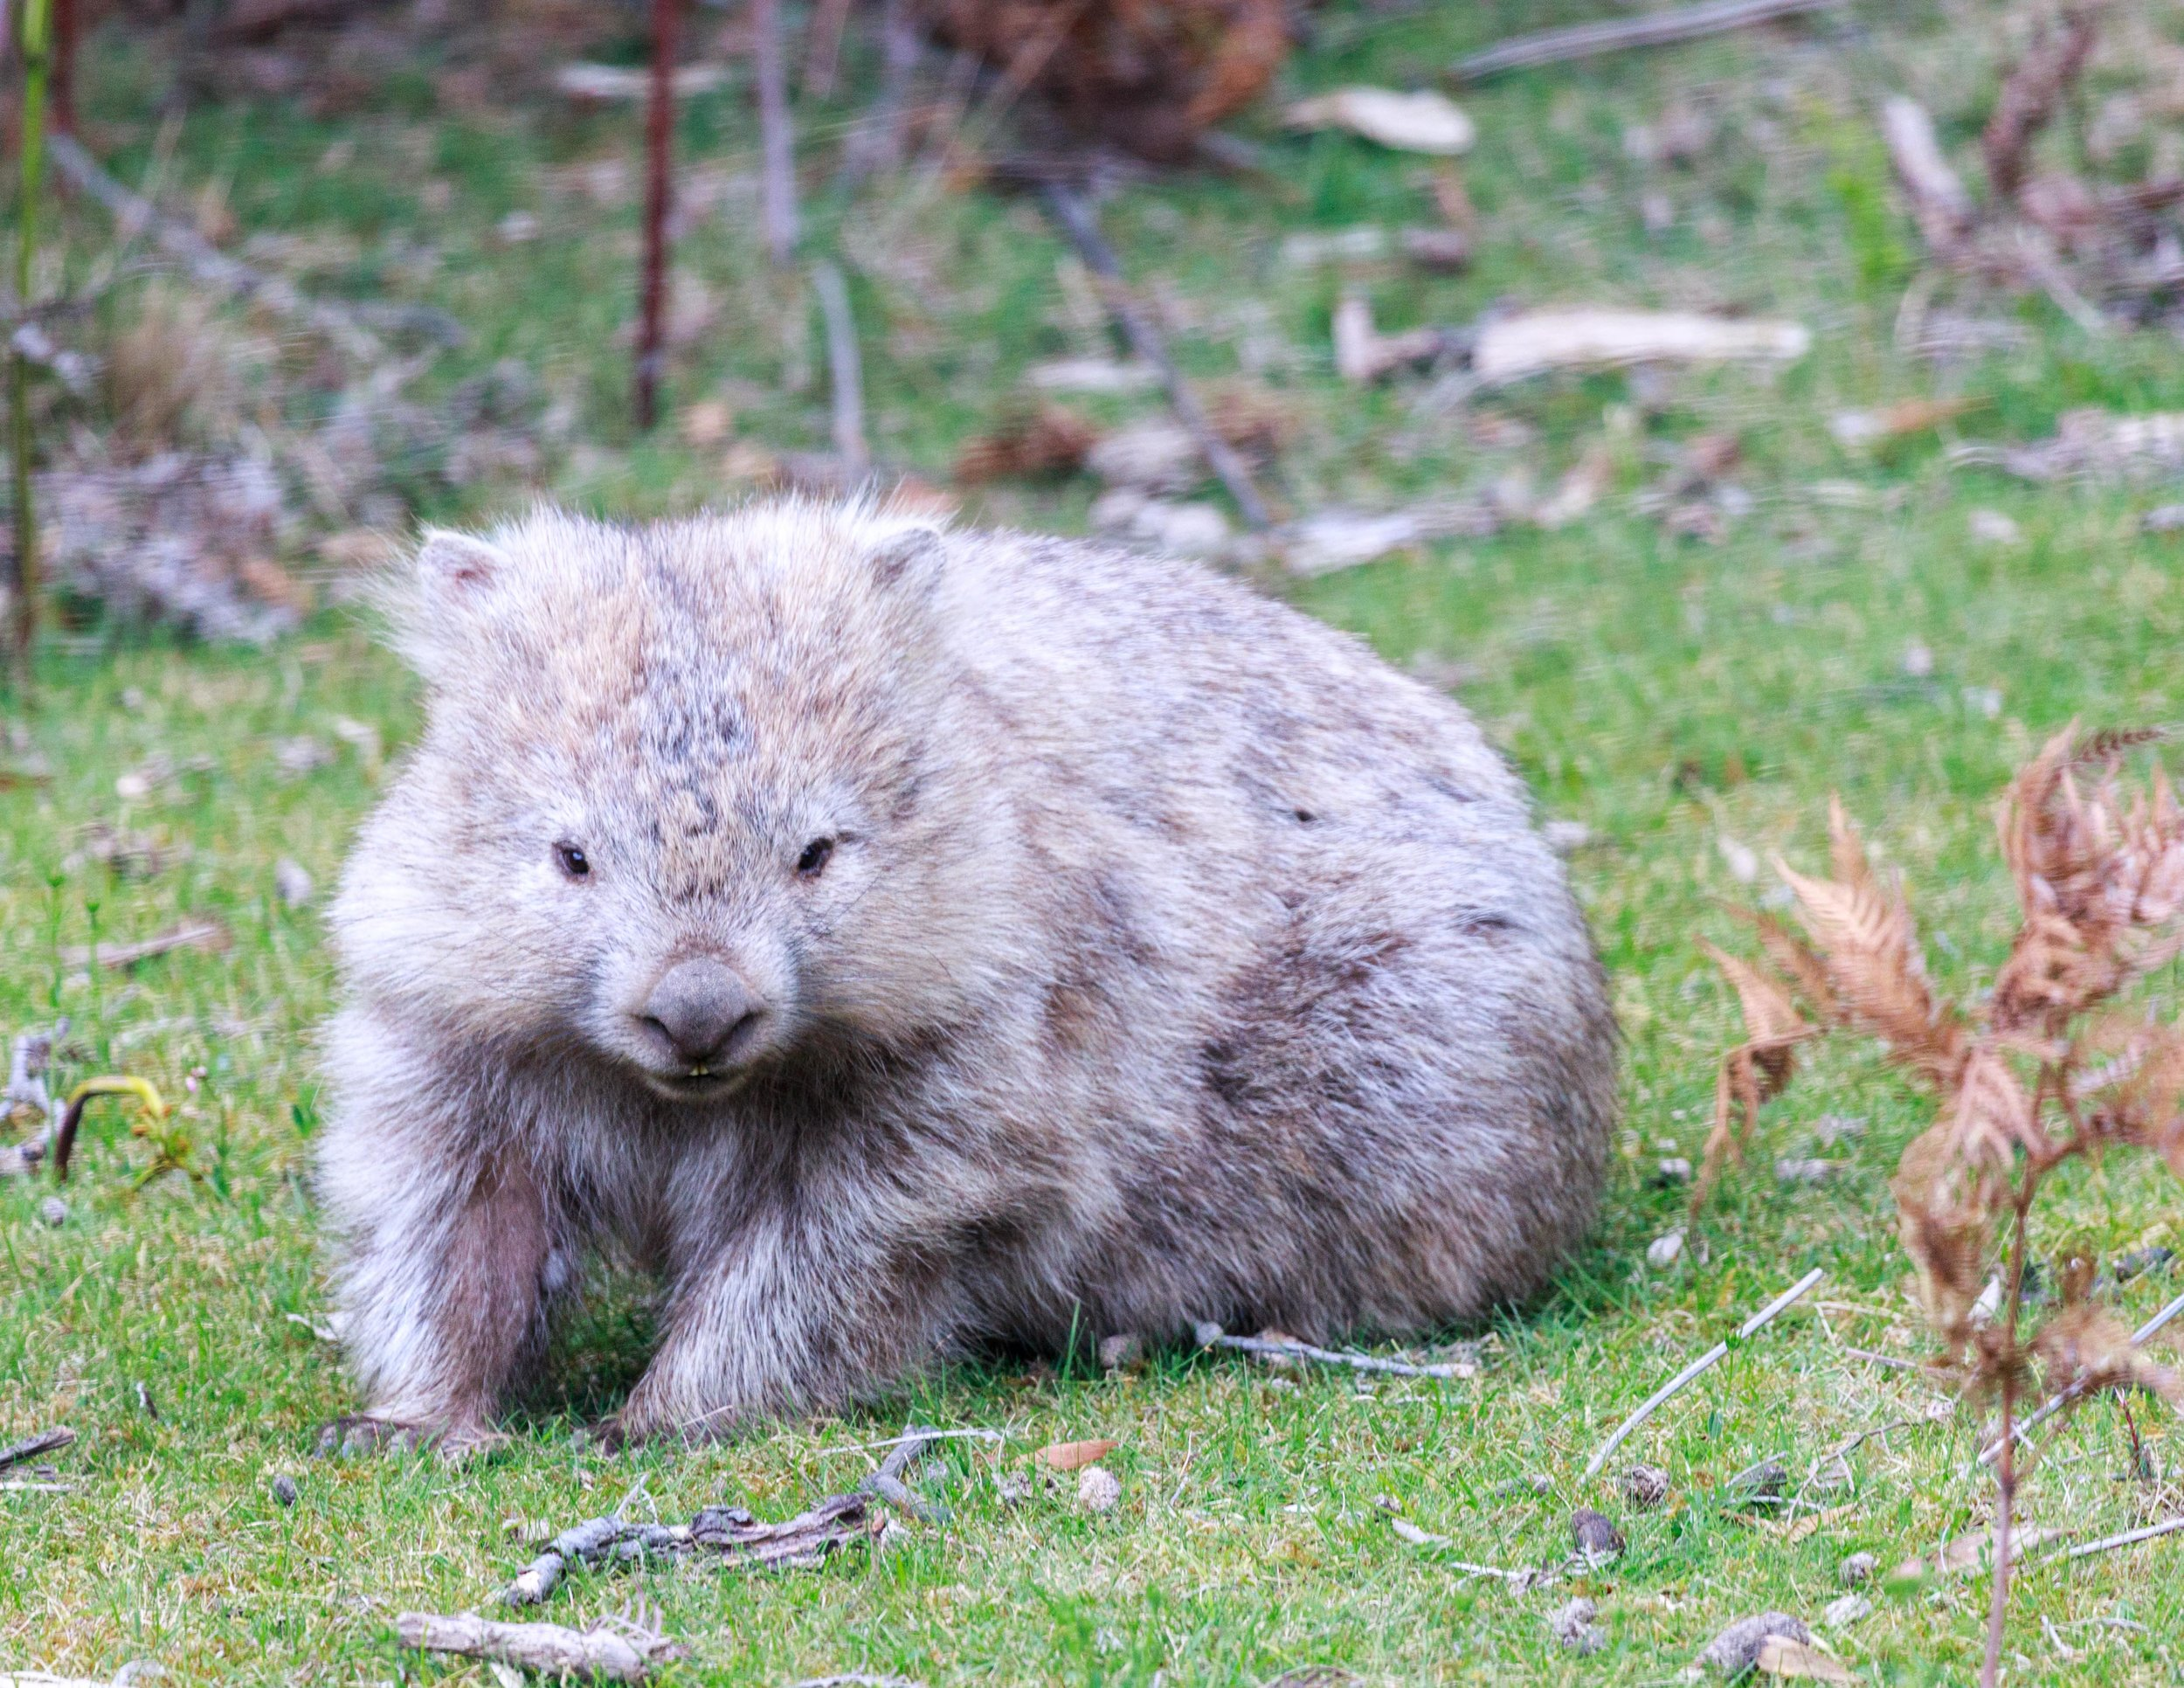 Where to see wombats in the wild: Wilson's Prom, Victoria